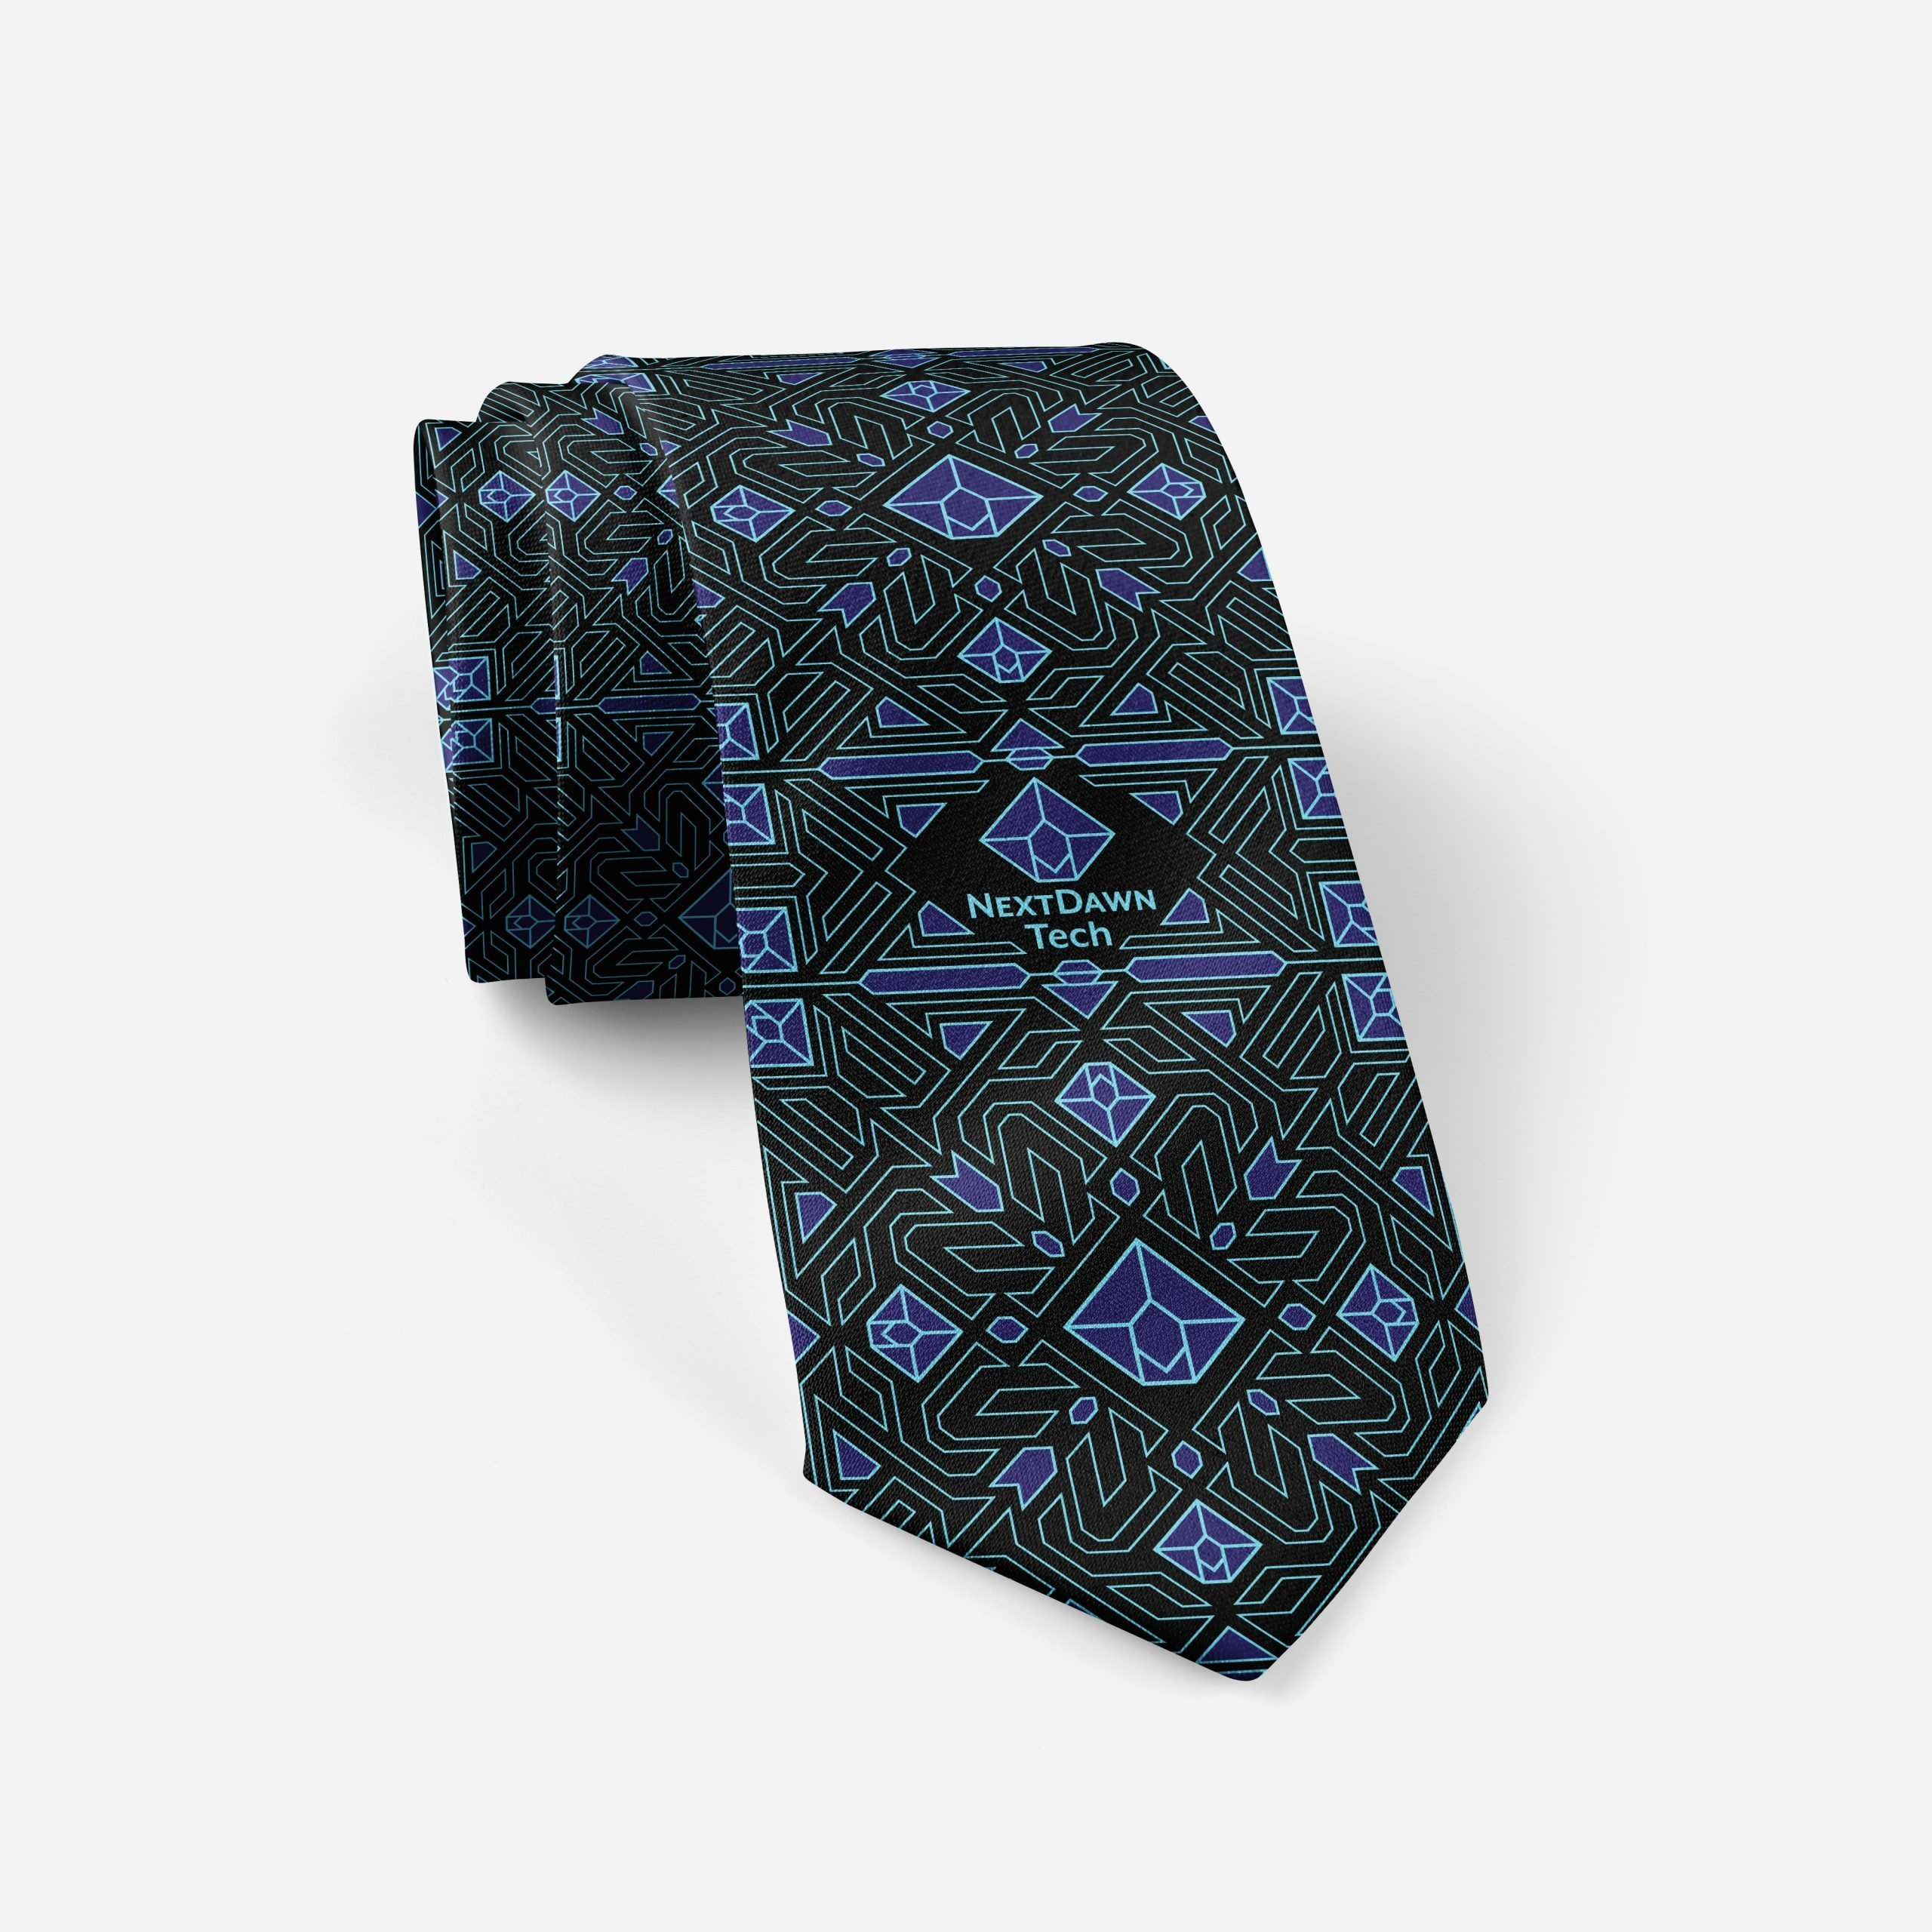 Necktie Corporate Gift Idea